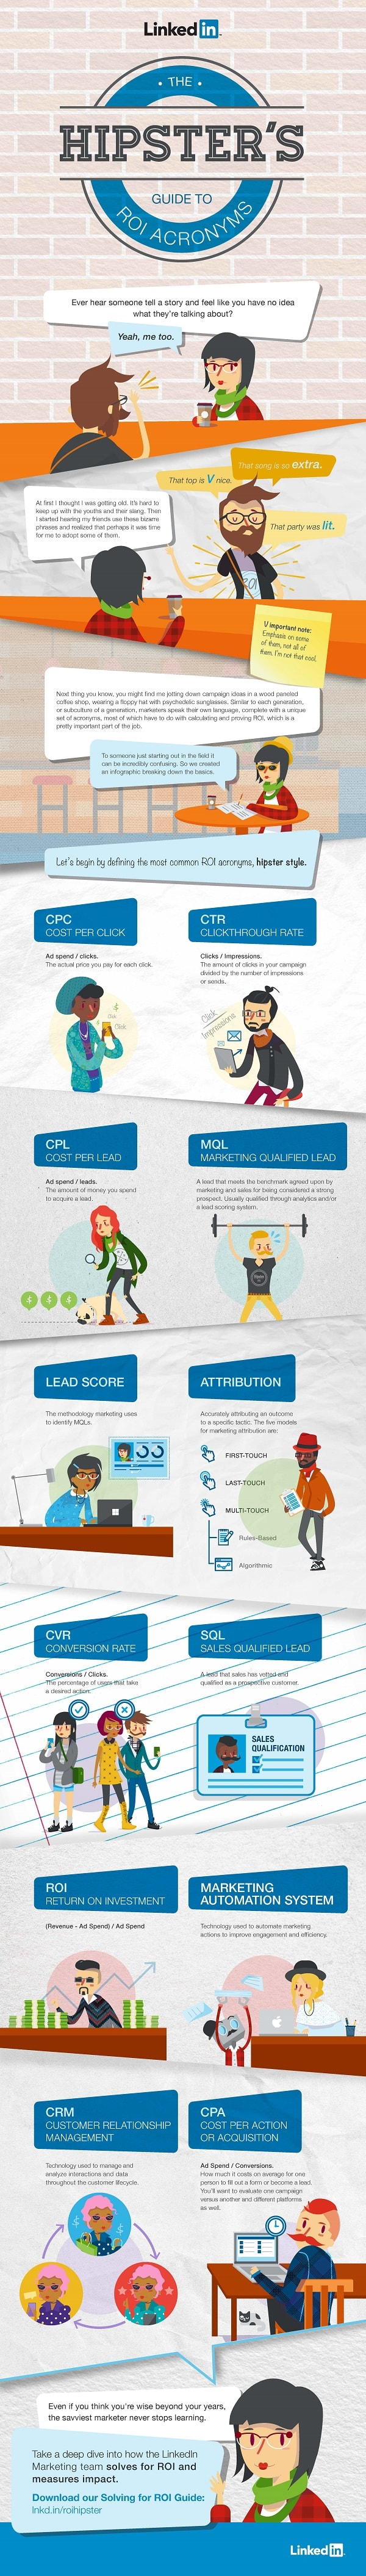 Hipsters guide to ROI infographic